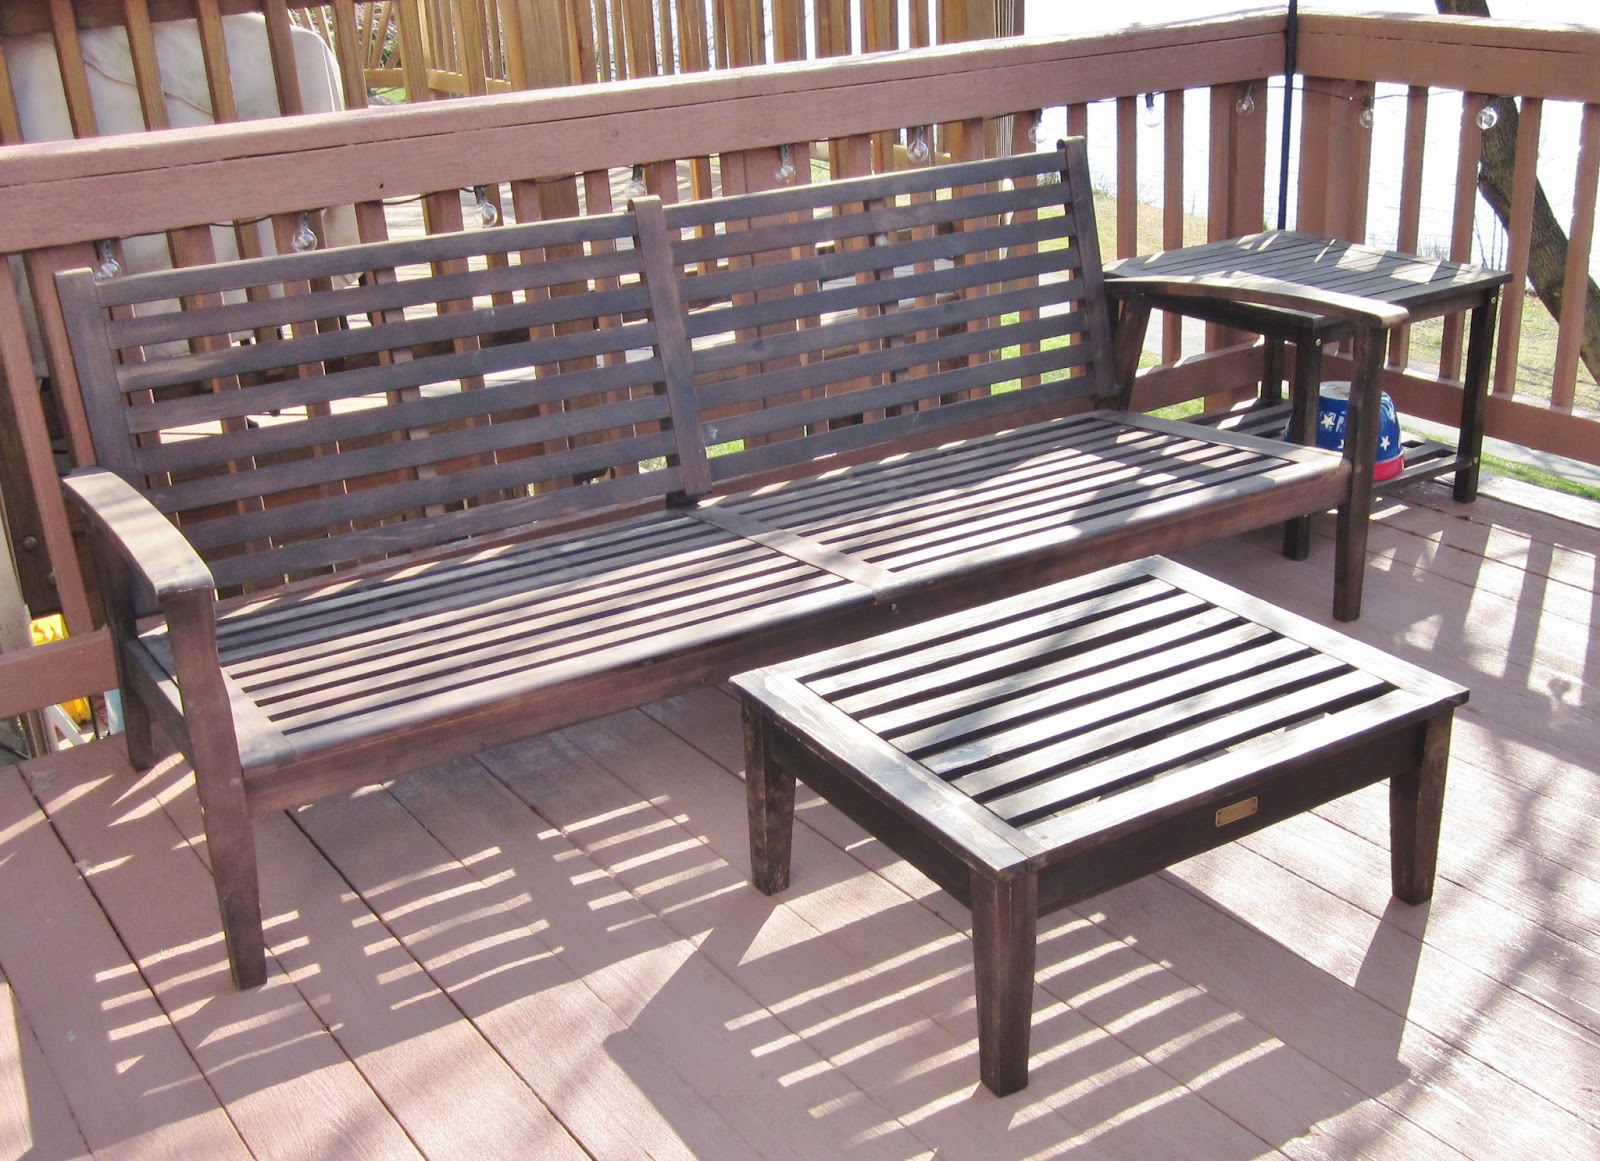 BonnieProjects: Refinishing wood patio furniture